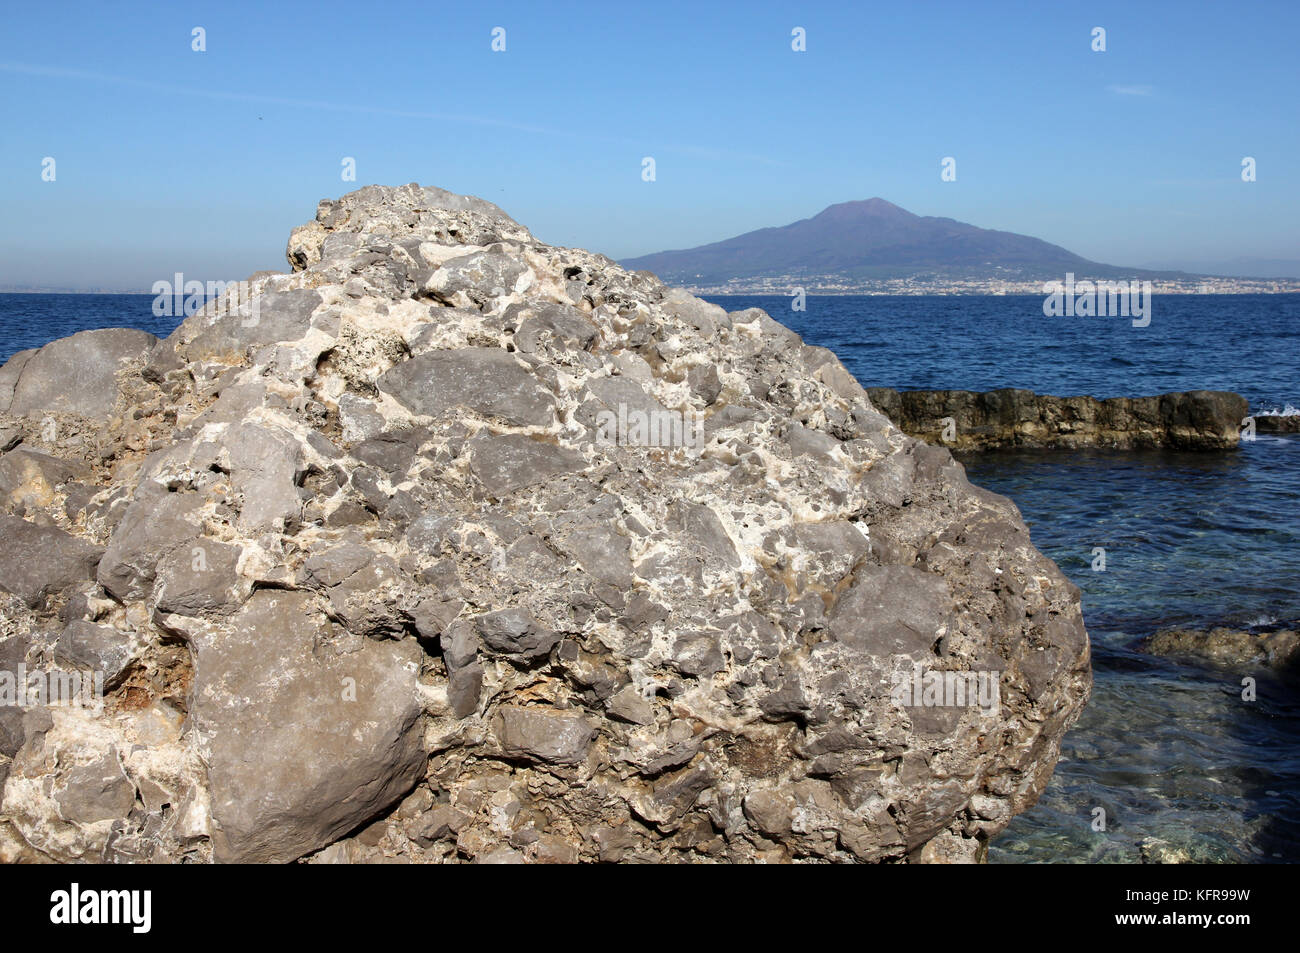 Breccia Stock Photos & Breccia Stock Images - Alamy